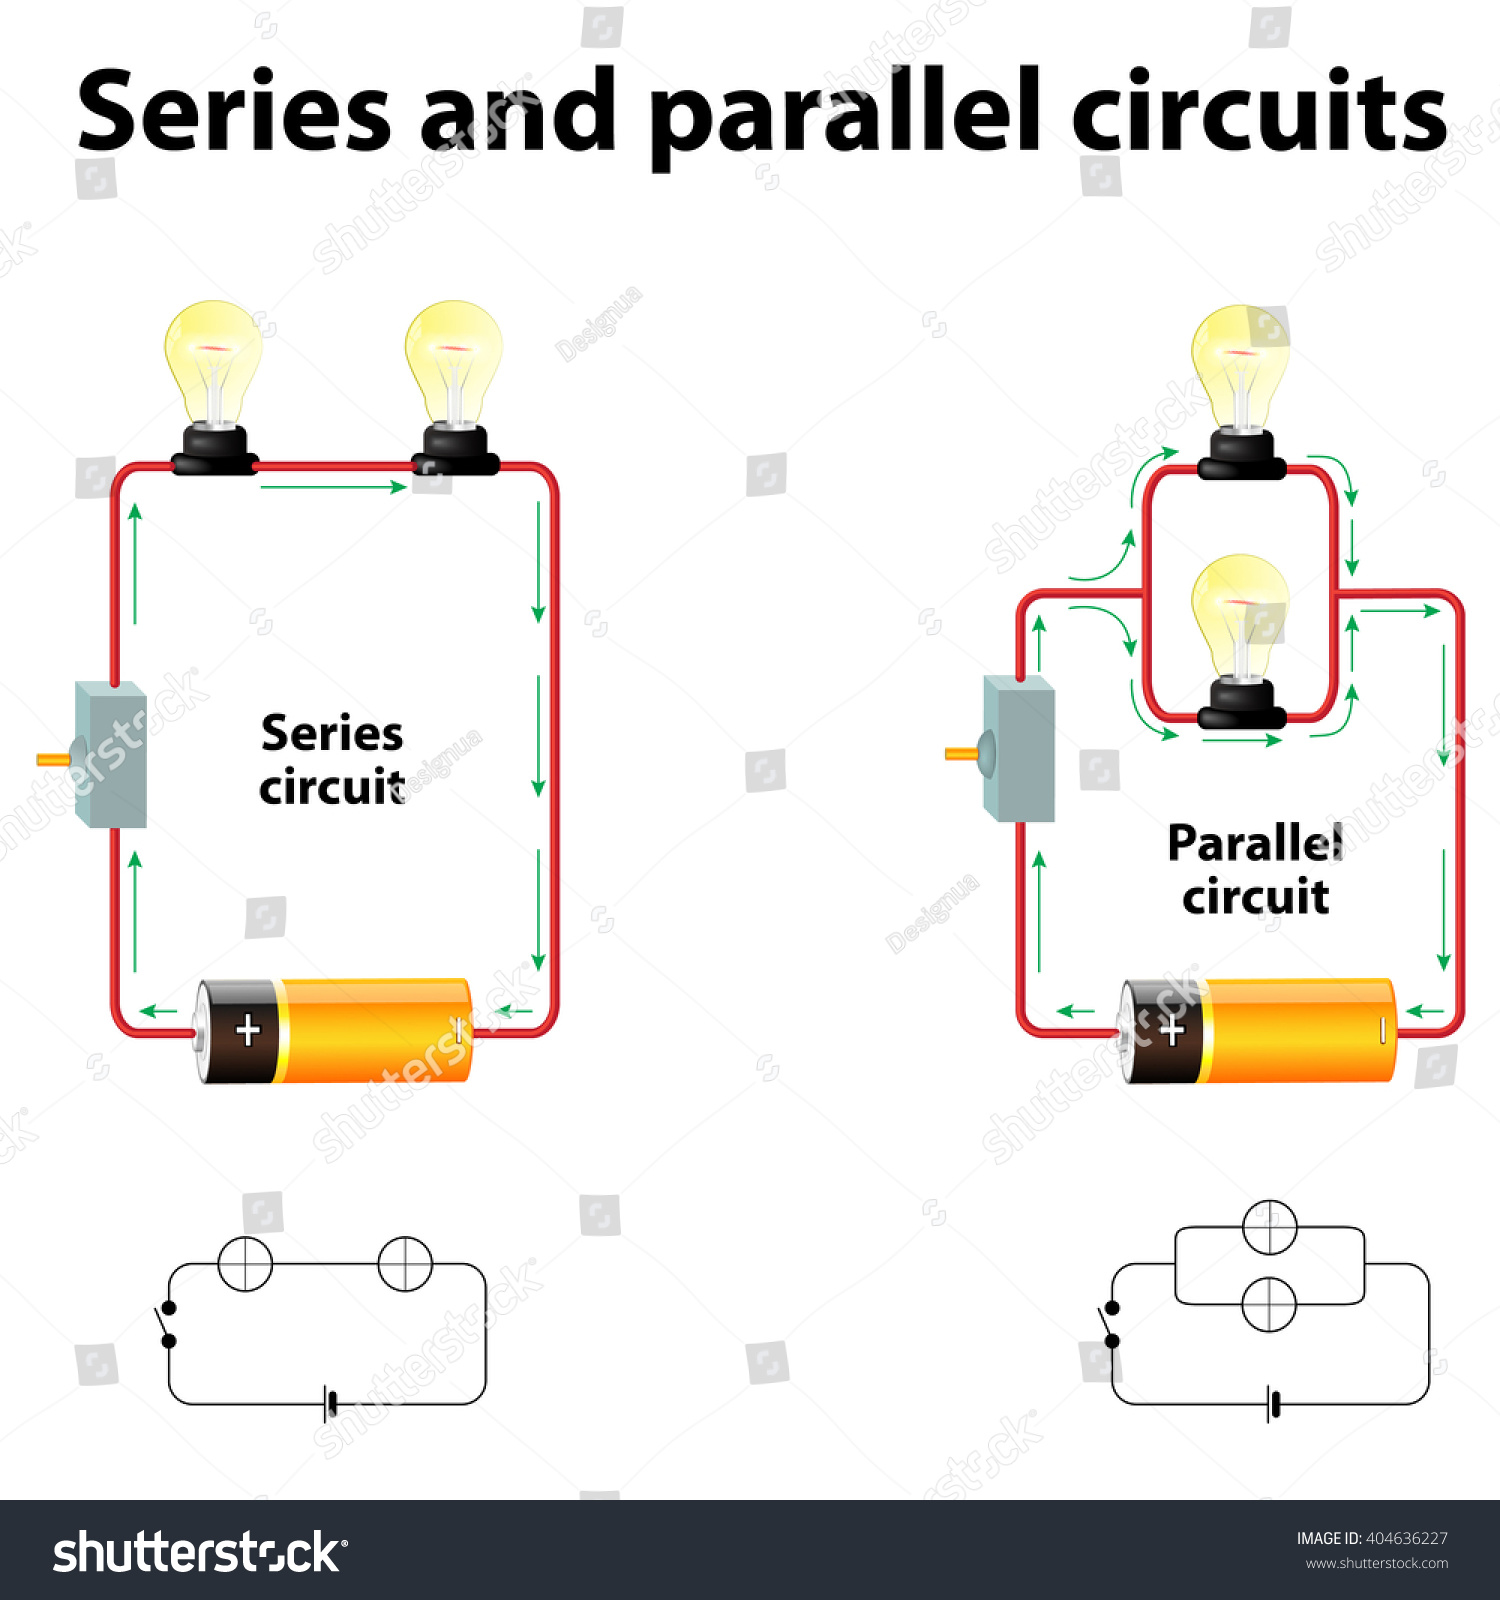 Simple Series Parallel Circuit Problems Jude Nestiutul Film Online Lesson 8 And Circuits Define The Criteria Constraints Of A Design Problem With Brainstorm Where